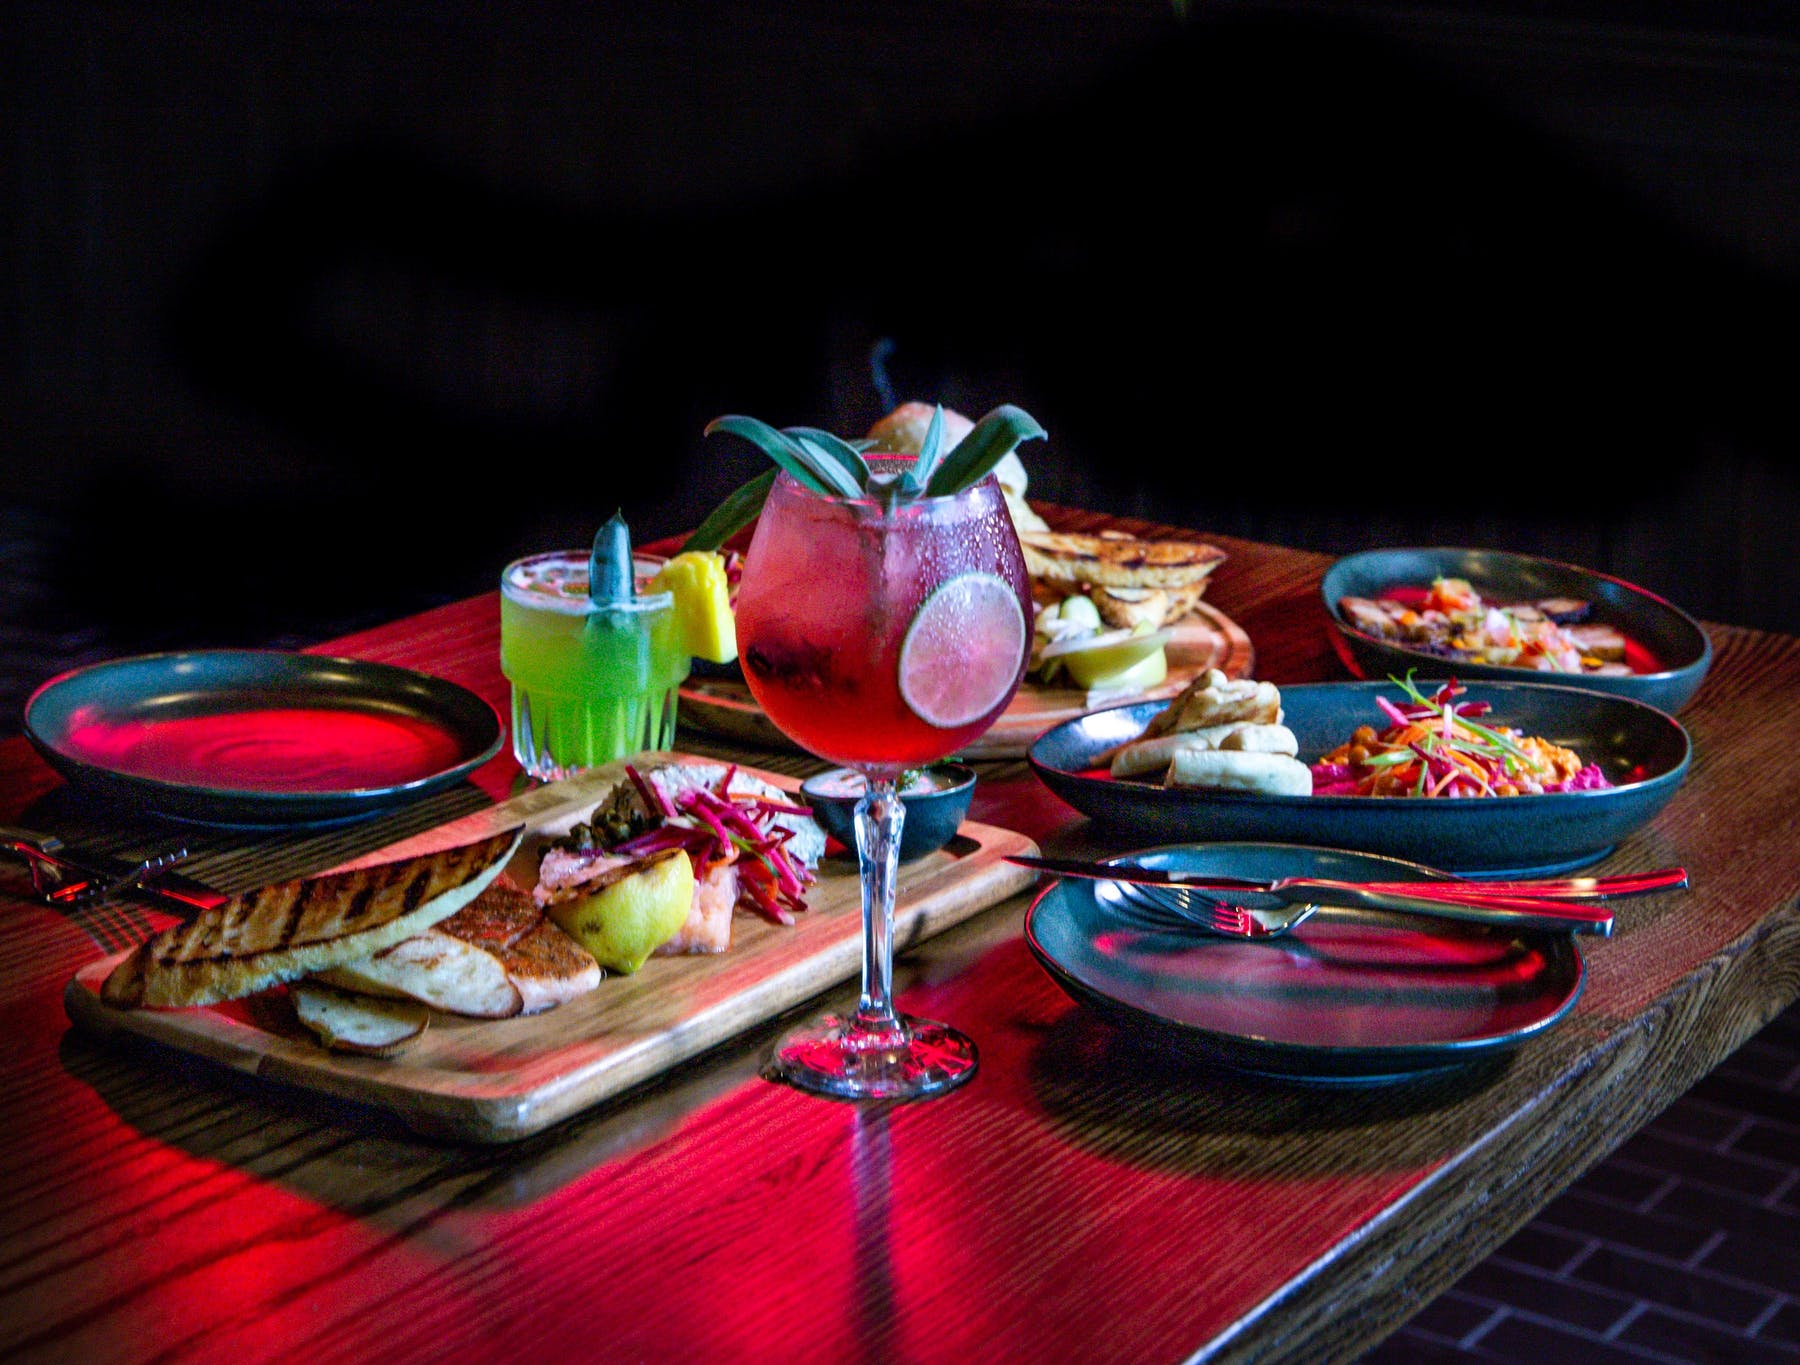 a table topped with a red tablecloth, plates of food and glasses of wines